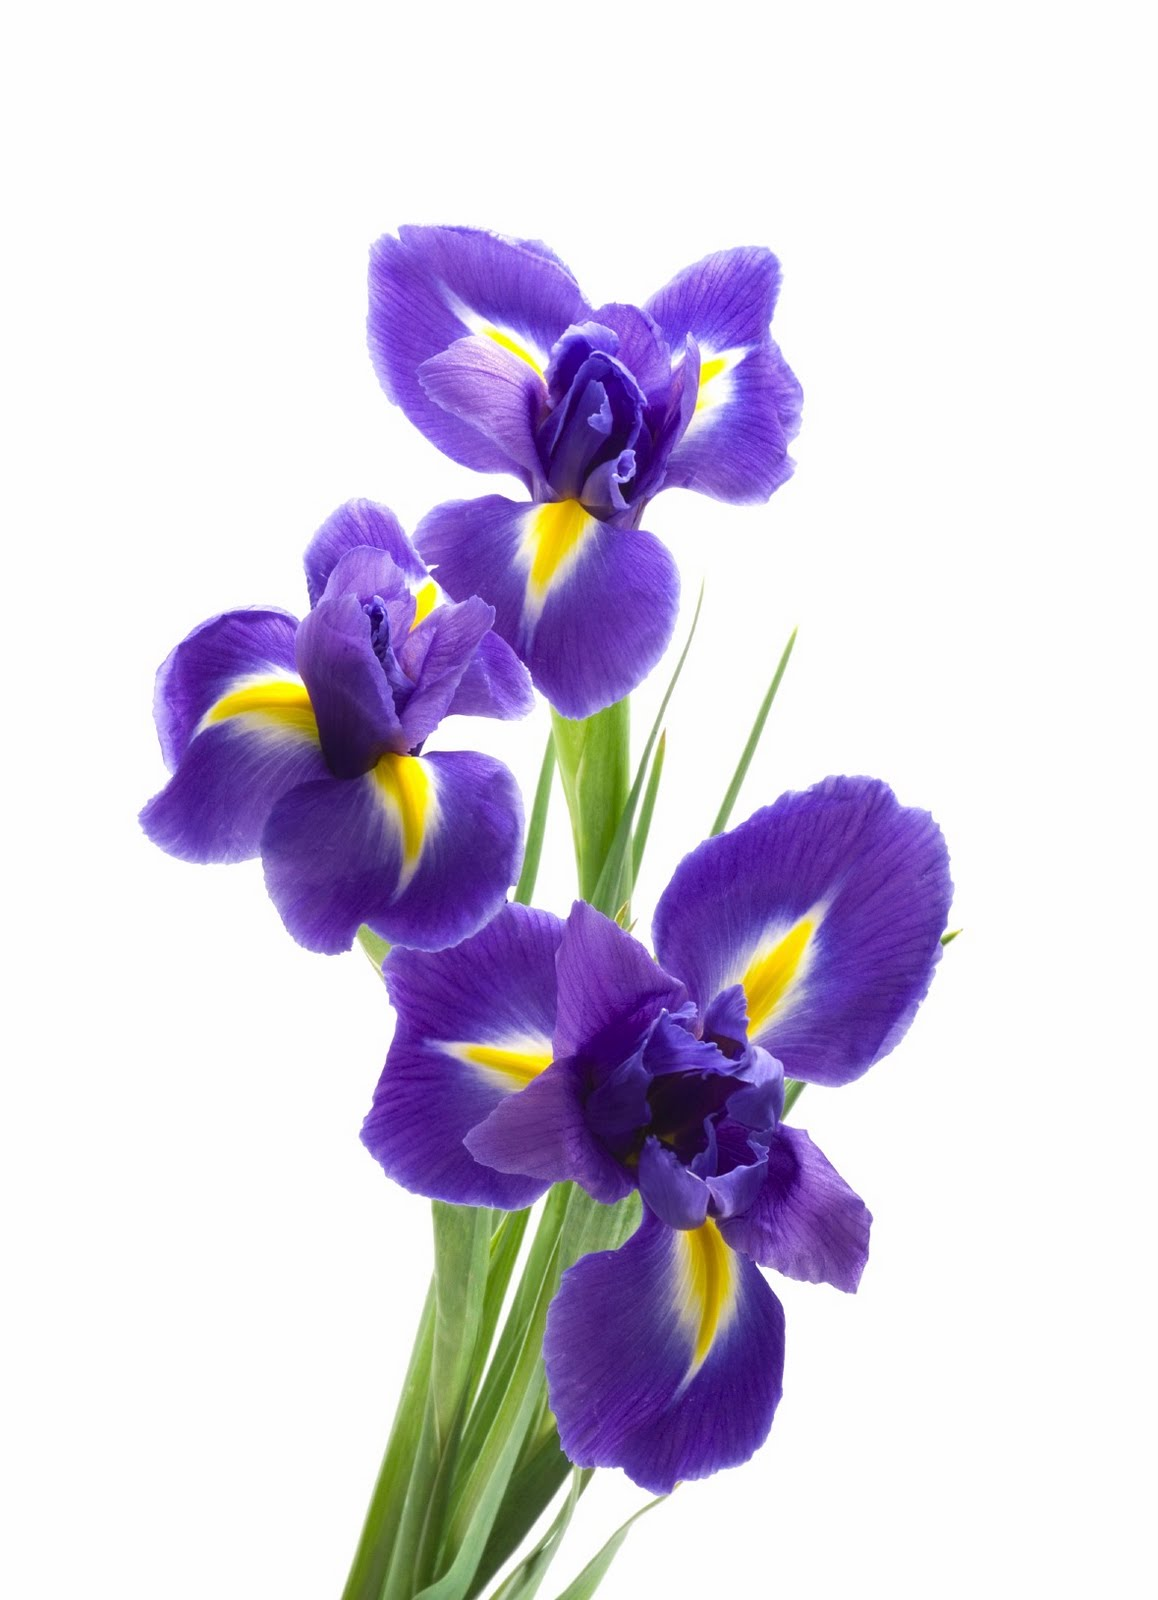 Iris Flower Png Hd Transparent Iris Flower Hdg Images Pluspng